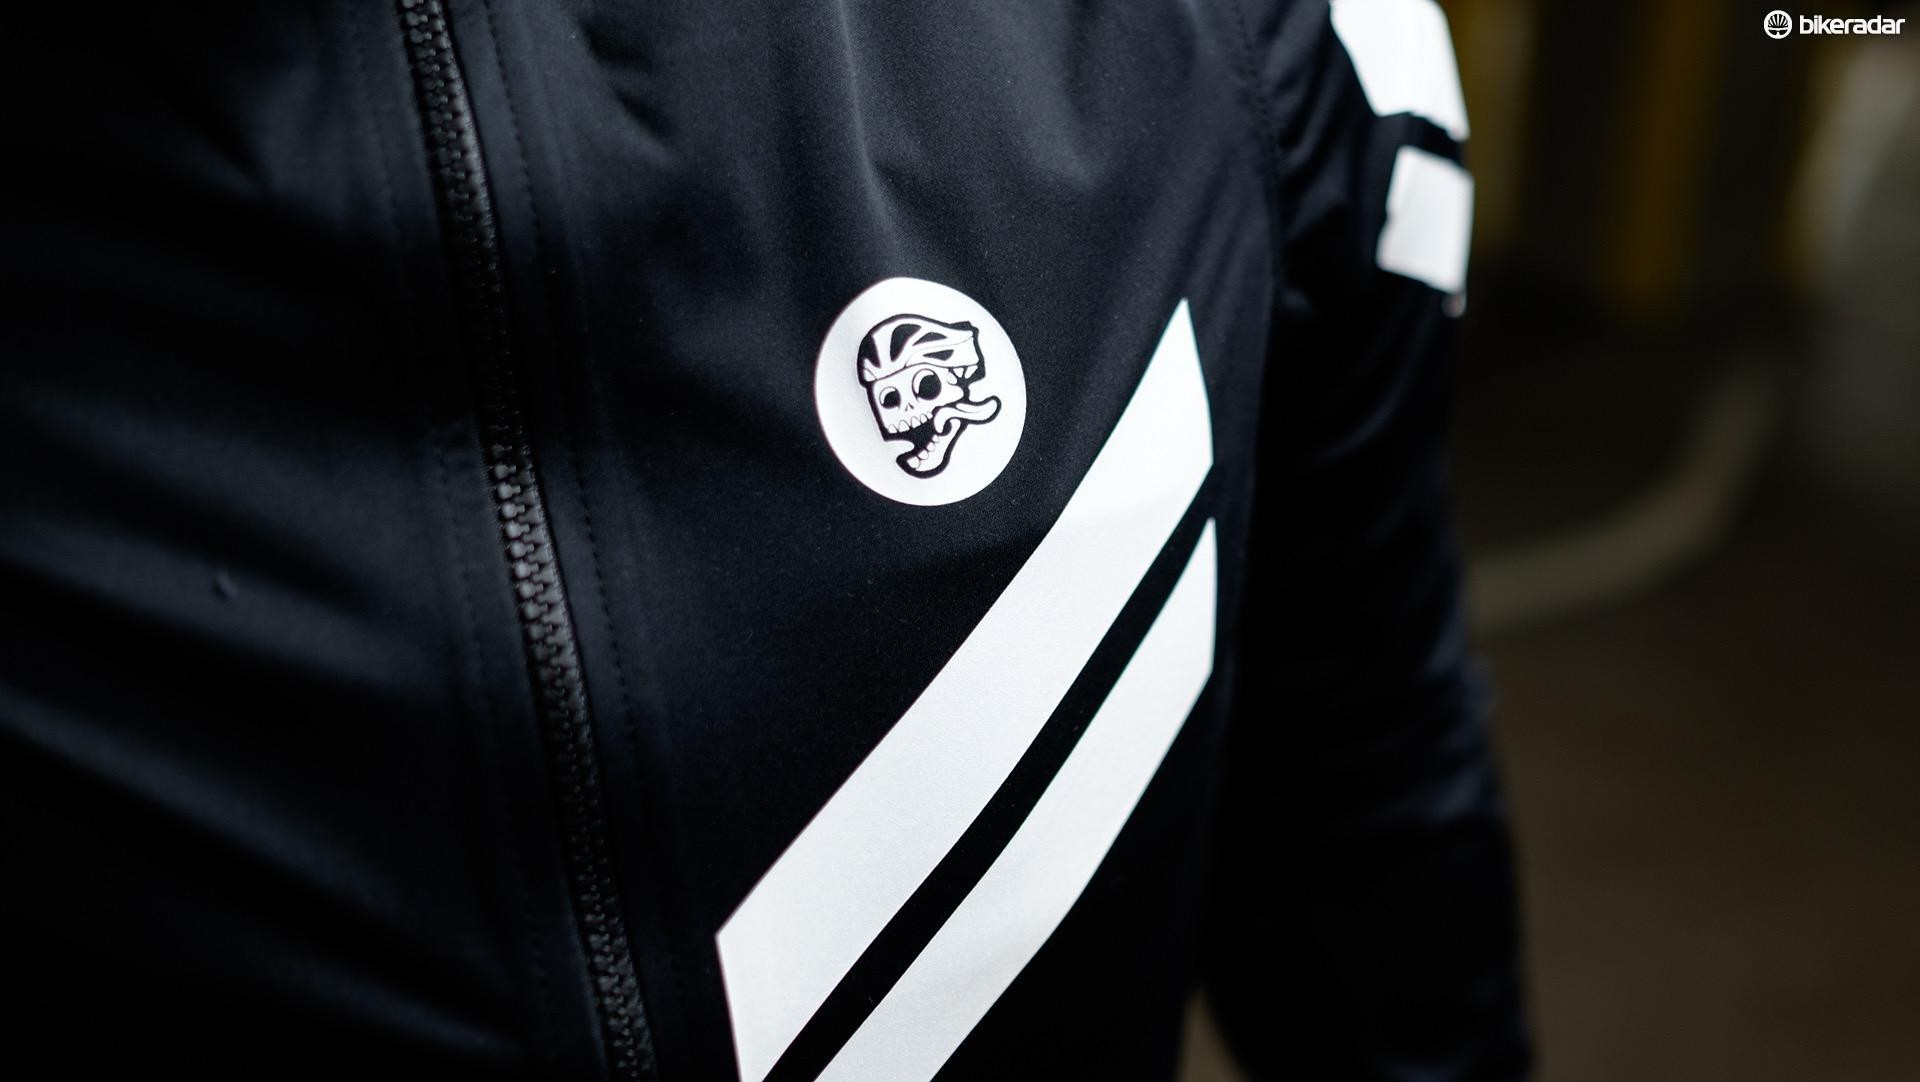 The white details on the jacket offer reflectivity to an otherwise black garment